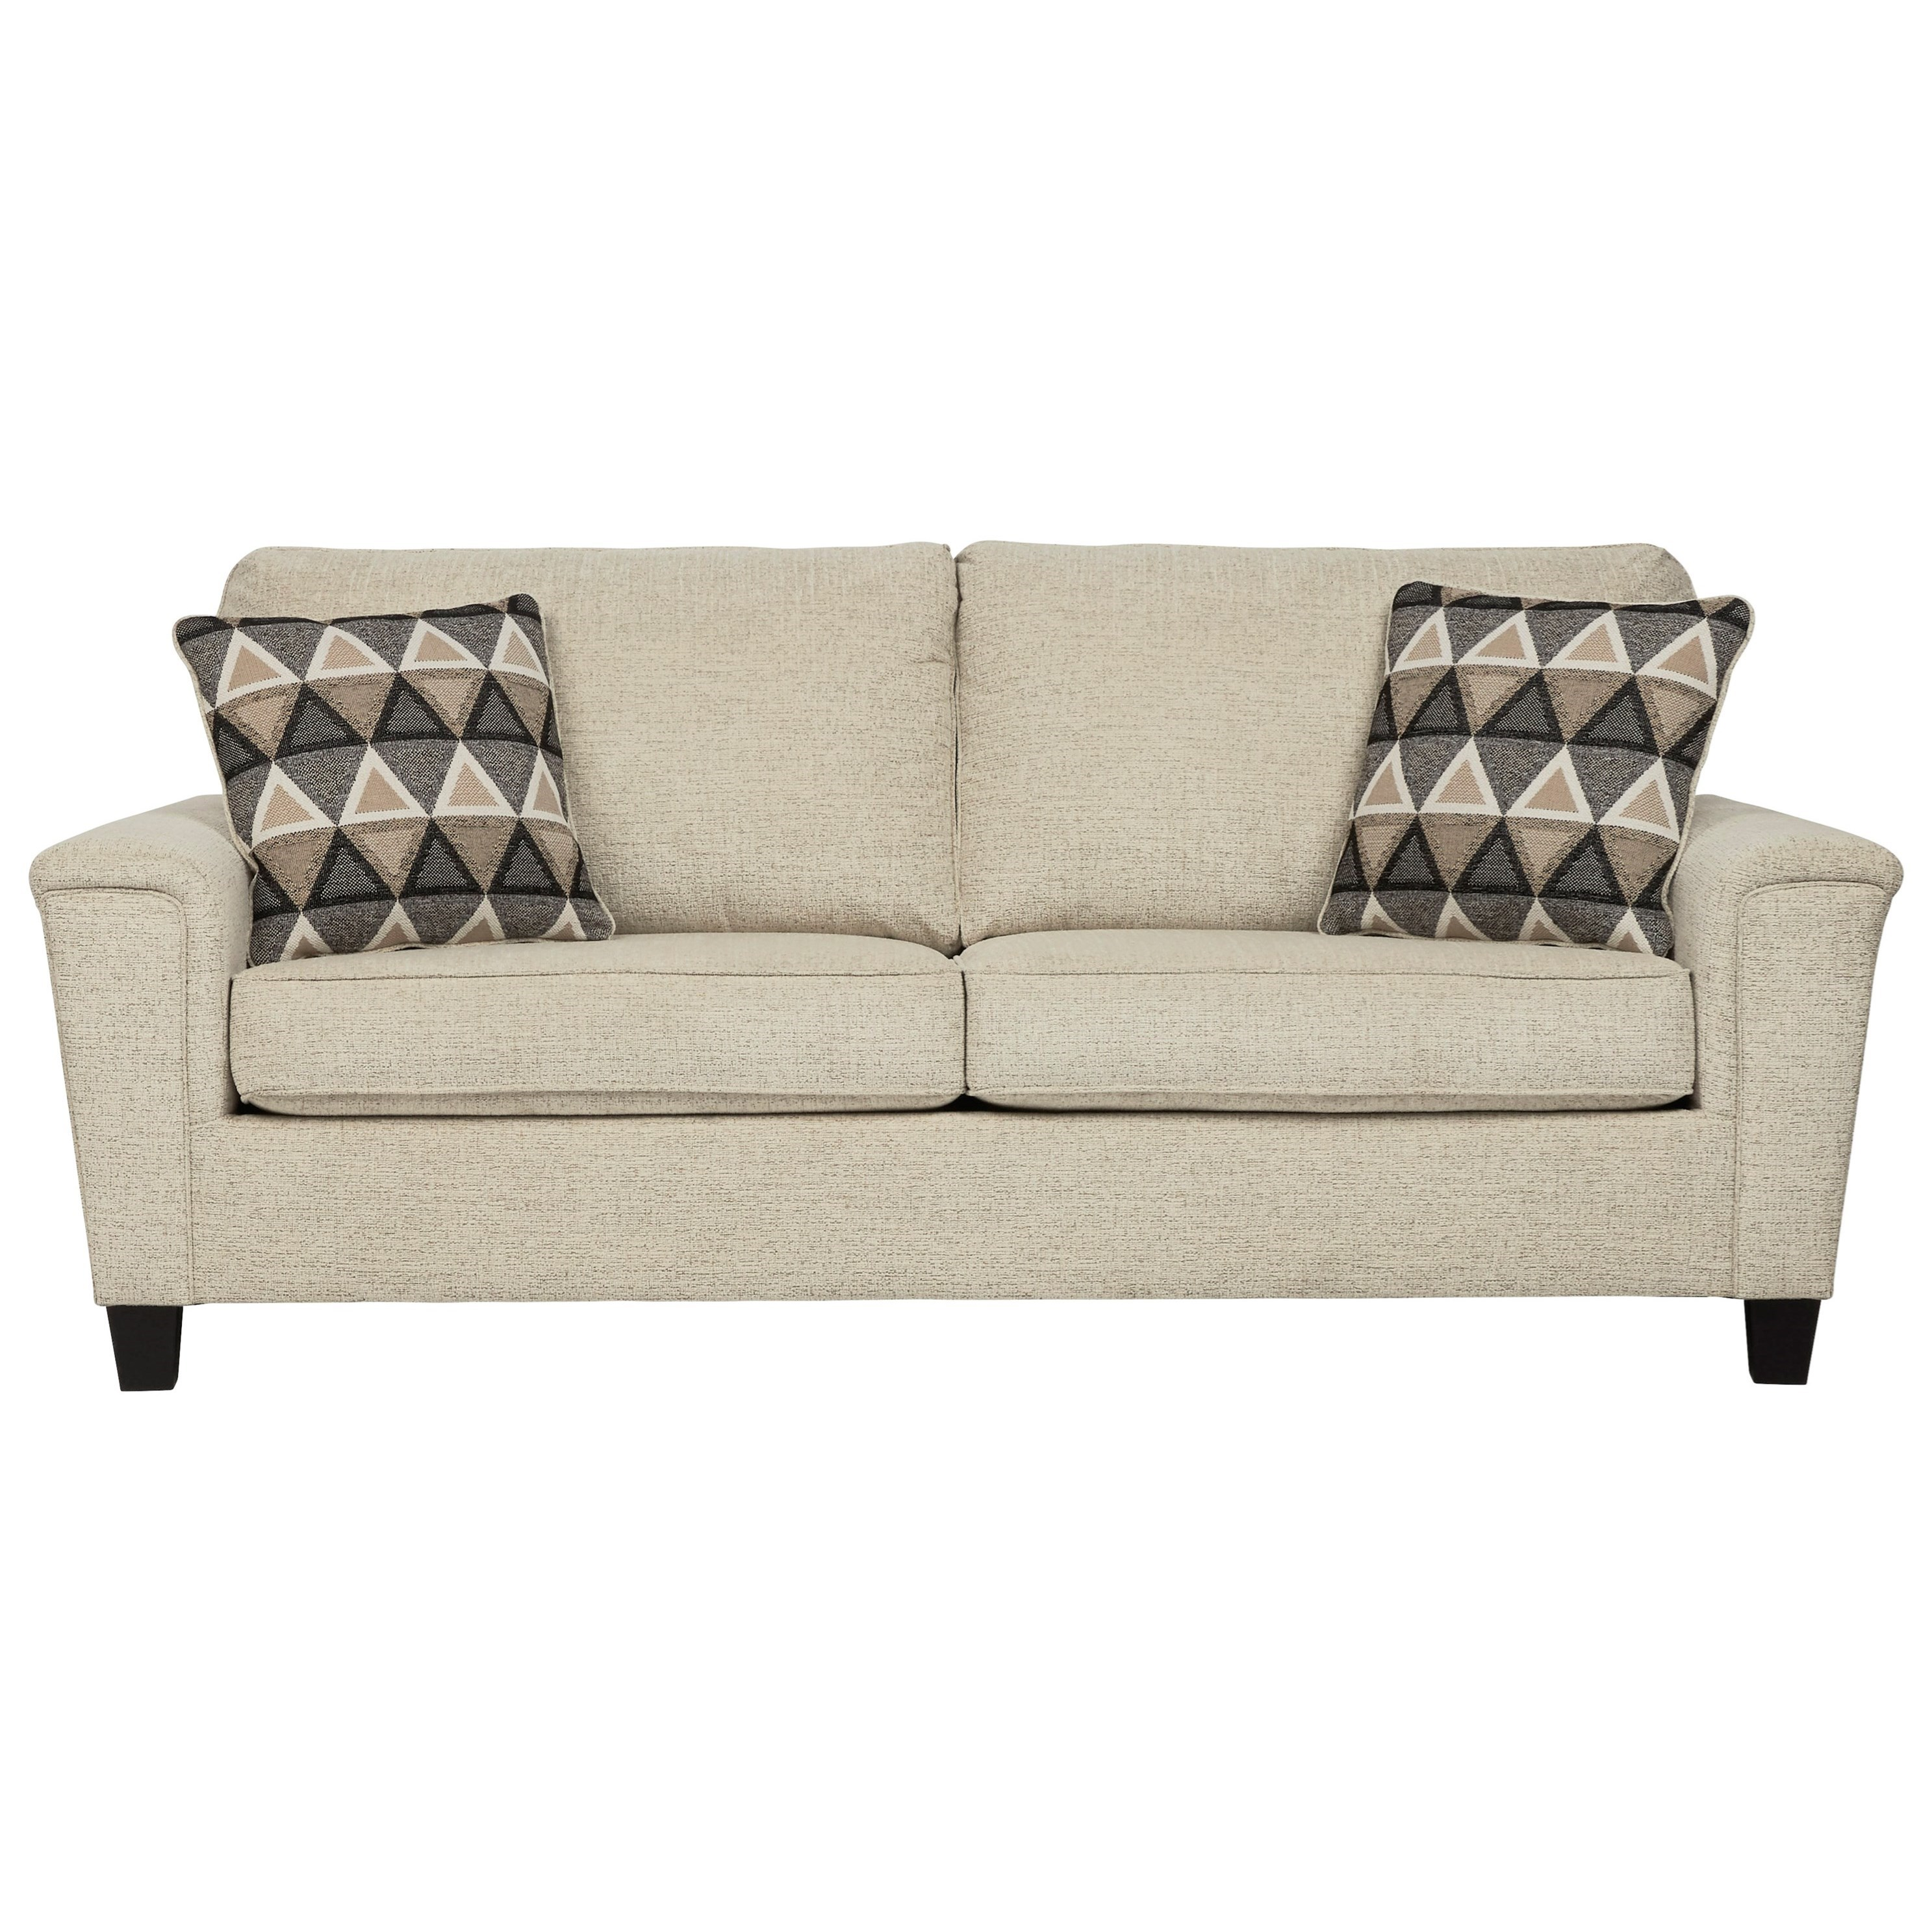 Abinger Sofa by Ashley Furniture Signature Design at Del Sol Furniture